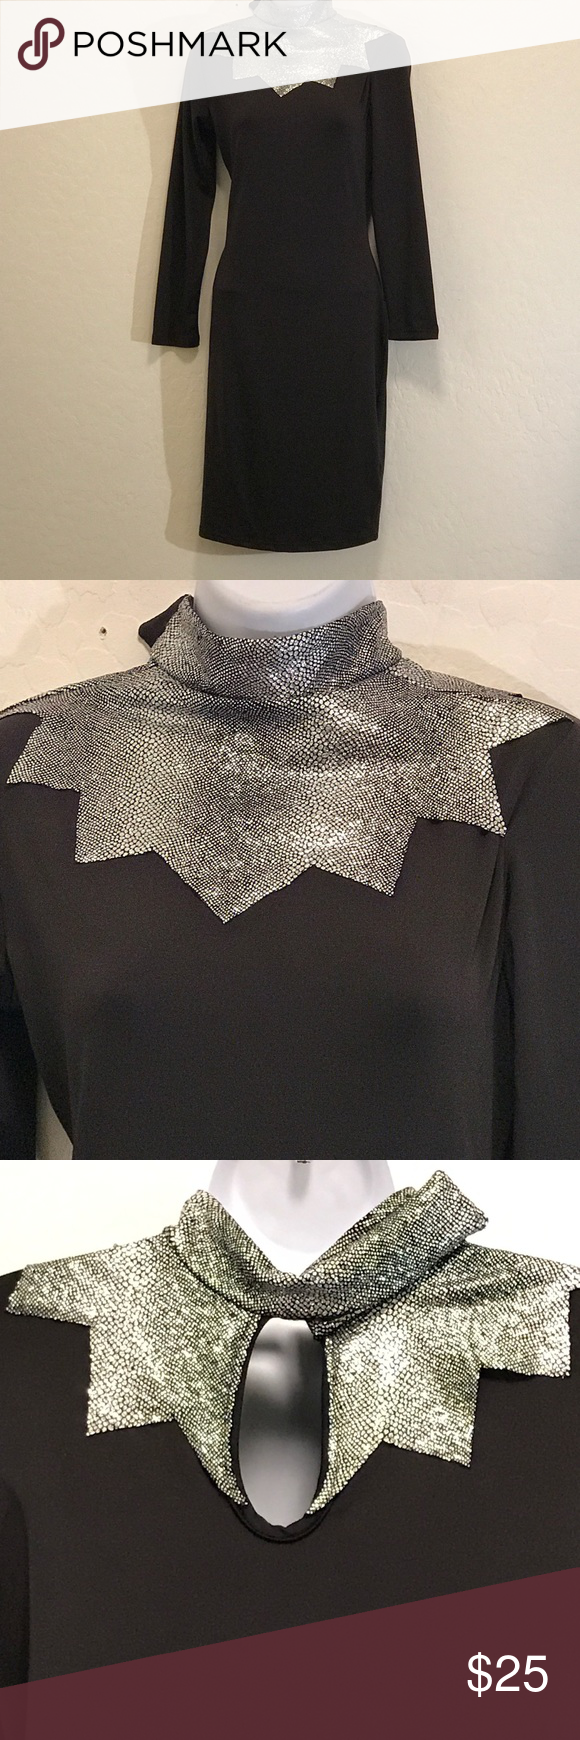 """⬇️Price Drop⬇️Black Cocktail Dress Never Worn, Silver Collar, Stretch, Long Sleeve, Keyhole Back, This is an attention getter for sure. Velcro Neck, Very Fitting. I wear a Medium, but this one really curves to your body. Runs on the small size to me. No tags on material feels like Polyester/Spandex. See measurements appx: bust 32"""" waist 27"""" hip 33"""" length 37"""" Perfect for any cocktail party. Dresses"""